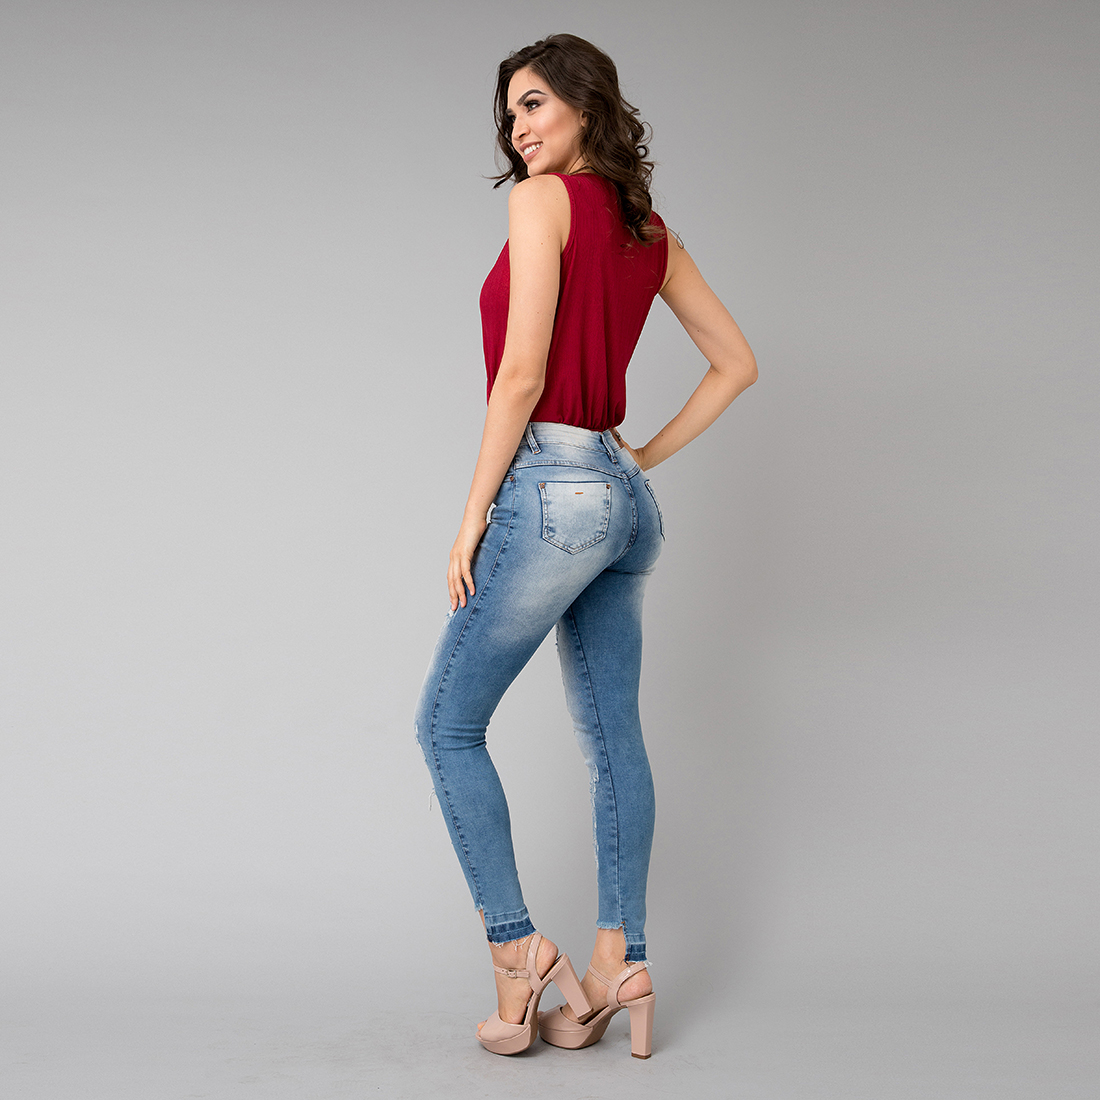 04362-CROPPED-2